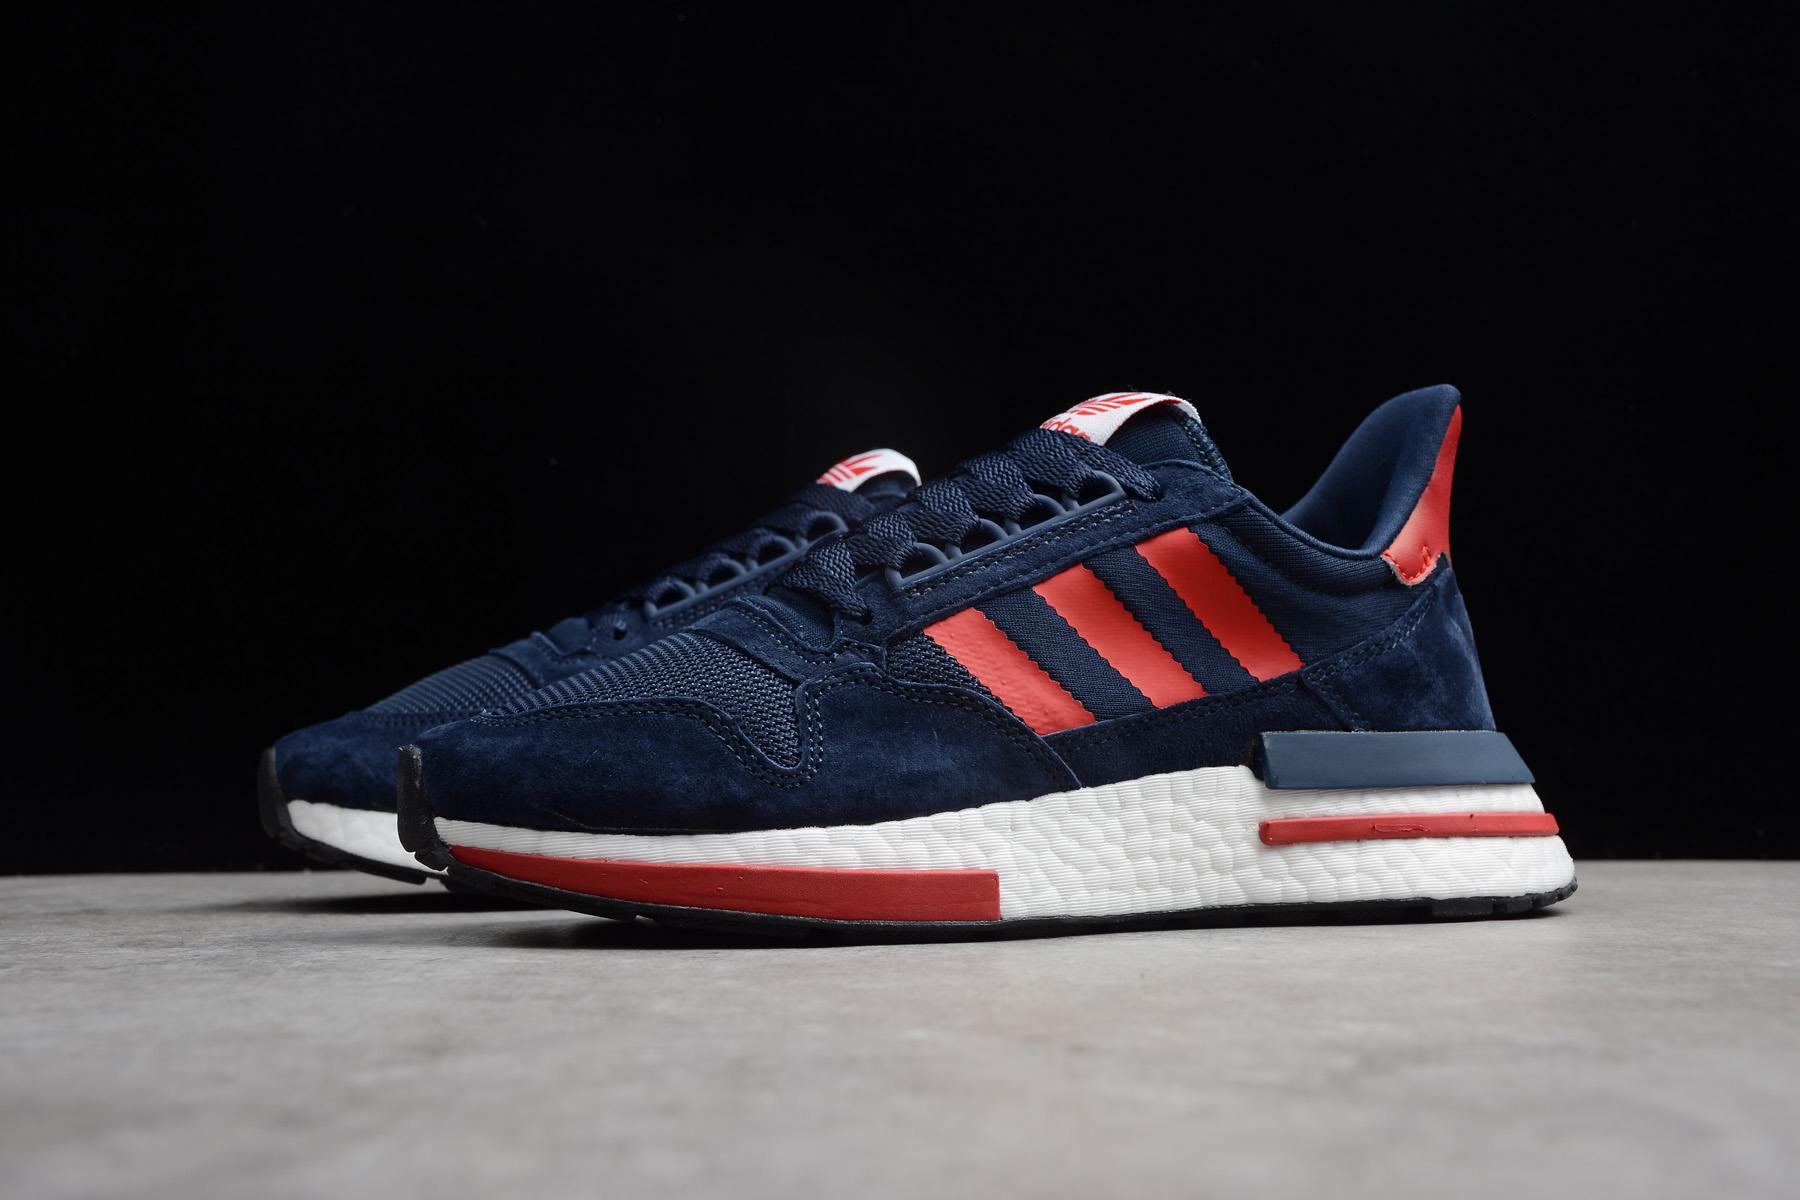 New flat nmd laces for black friday sale 2018 flyer Navy Blue/Red-White BB7446